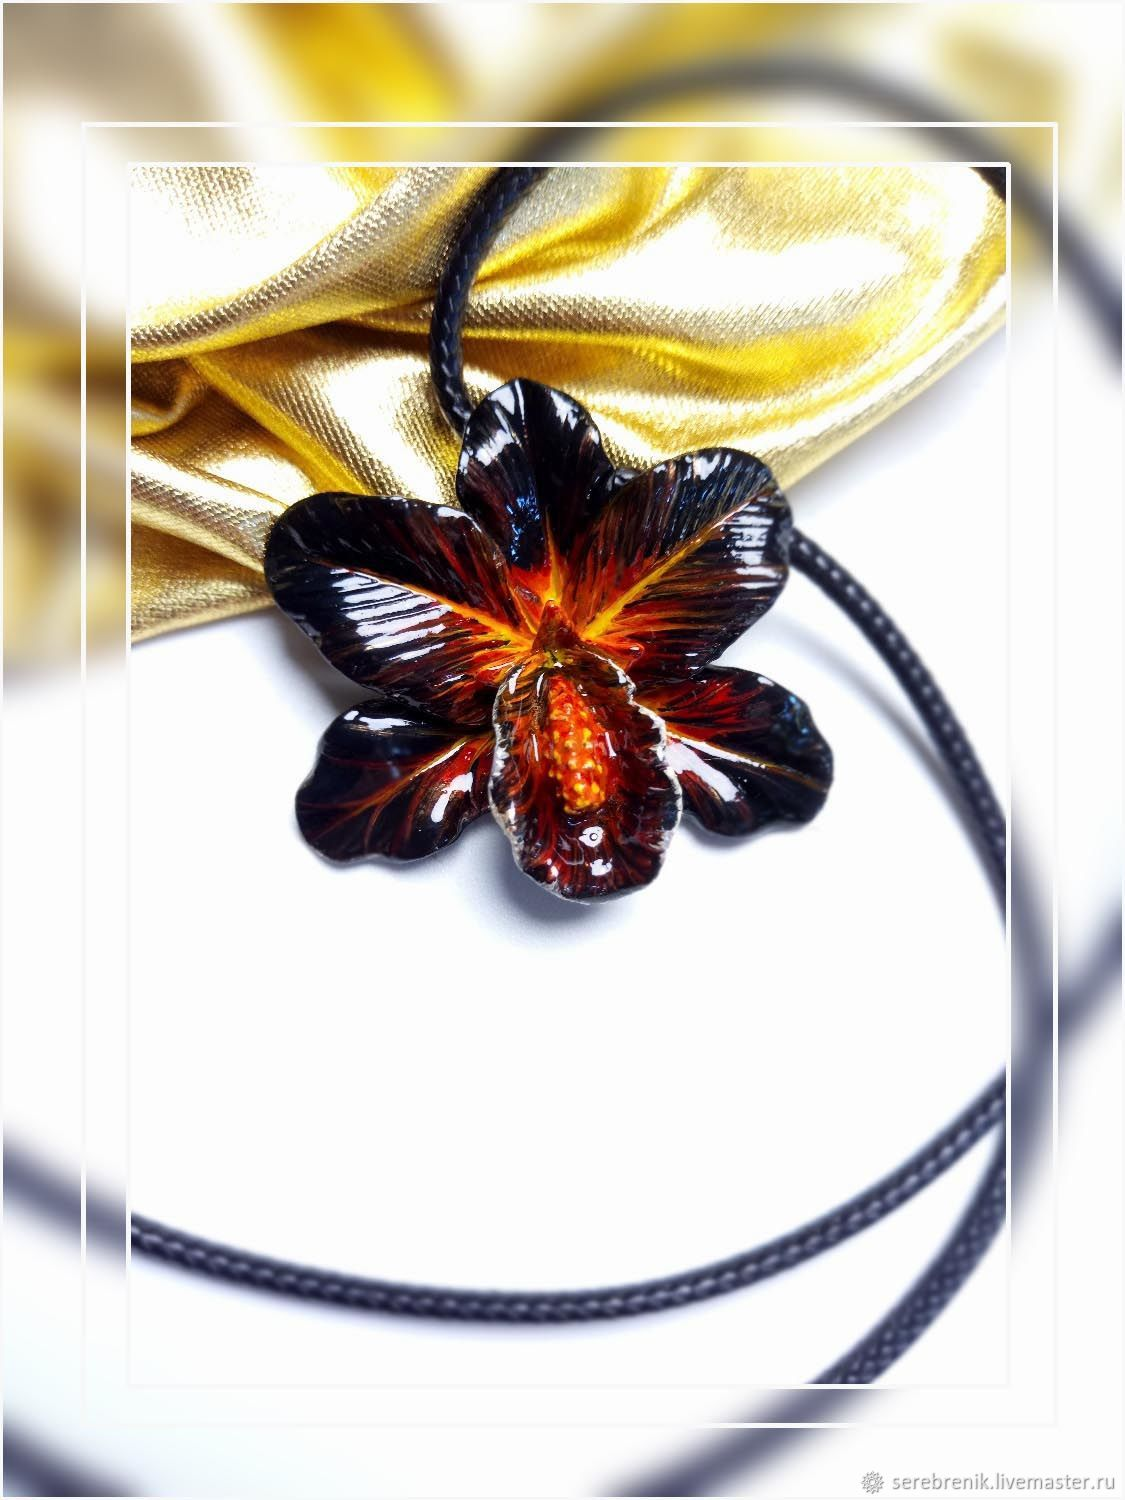 Black Orchid-volume pendant - pendant on a cord, Pendants, Moscow,  Фото №1